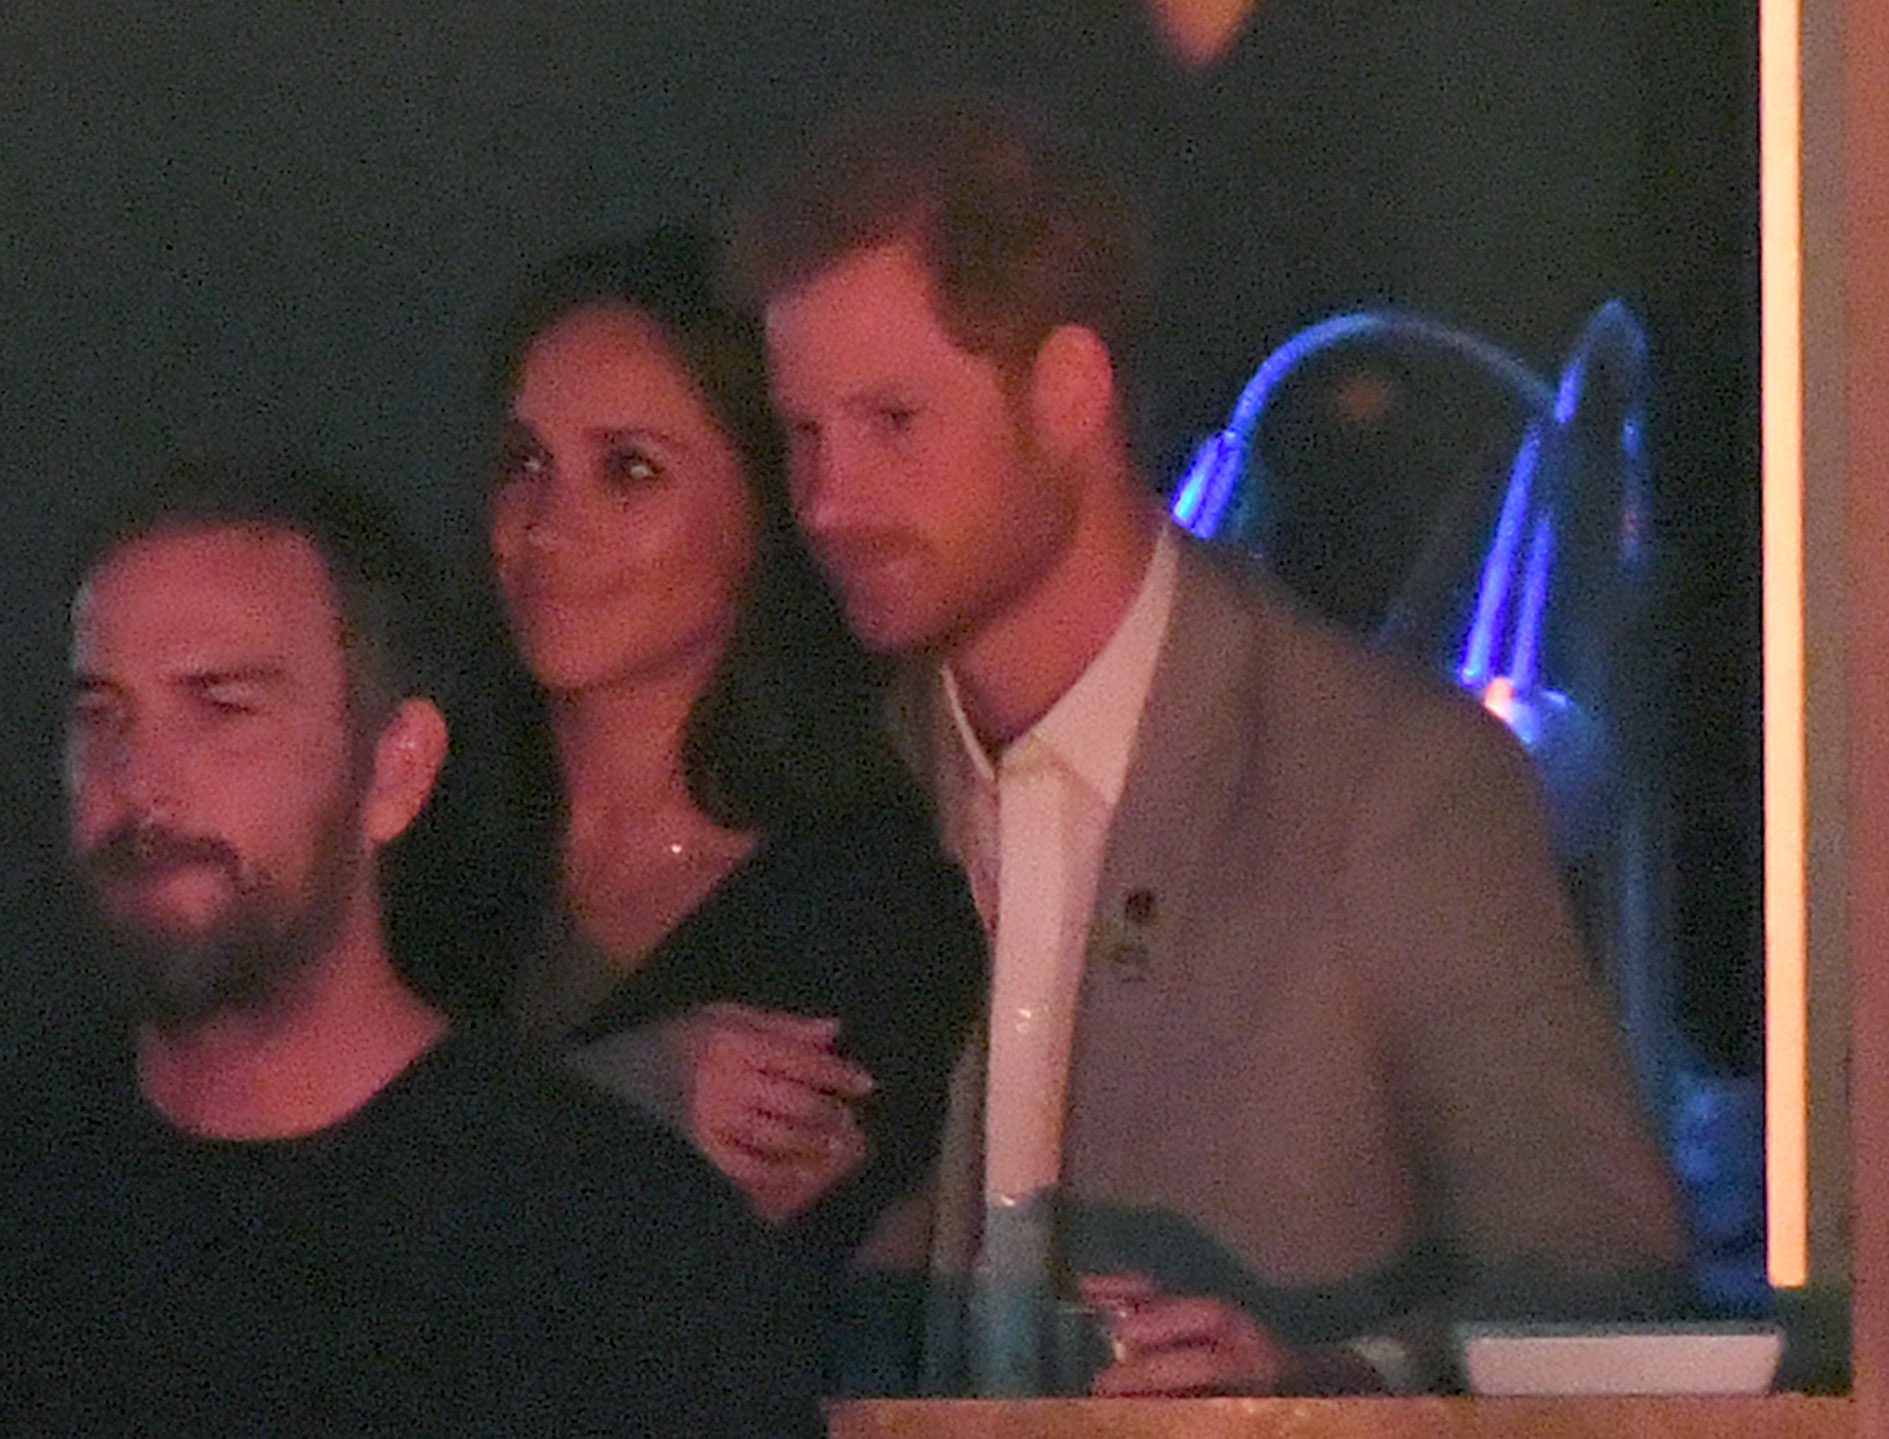 PDA-Meghan-Markle-And-Prince-Harry-Kiss-At-Invictus-Games